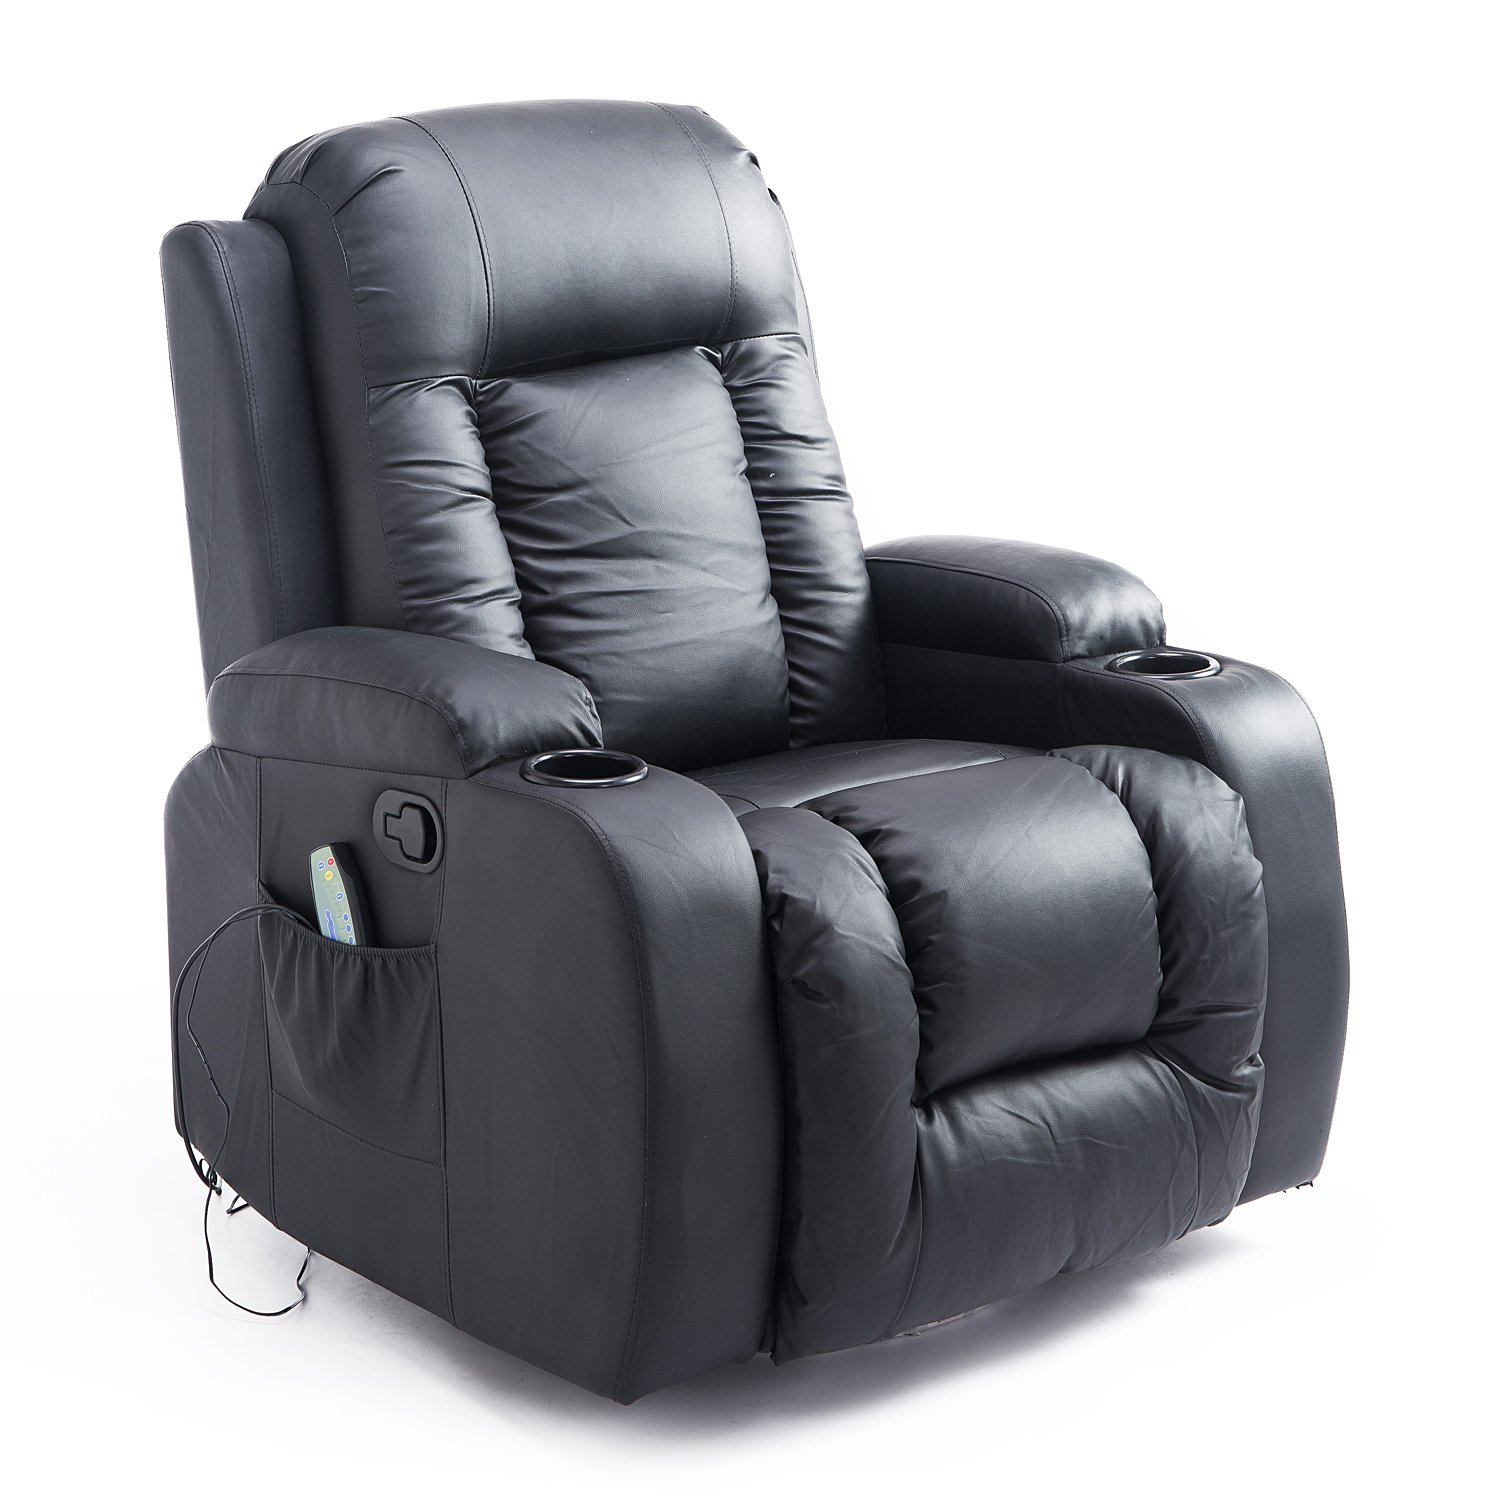 Homcom PU Leather Heated Vibrating Massage Swivel Recliner Arm Chair with Remote - Black